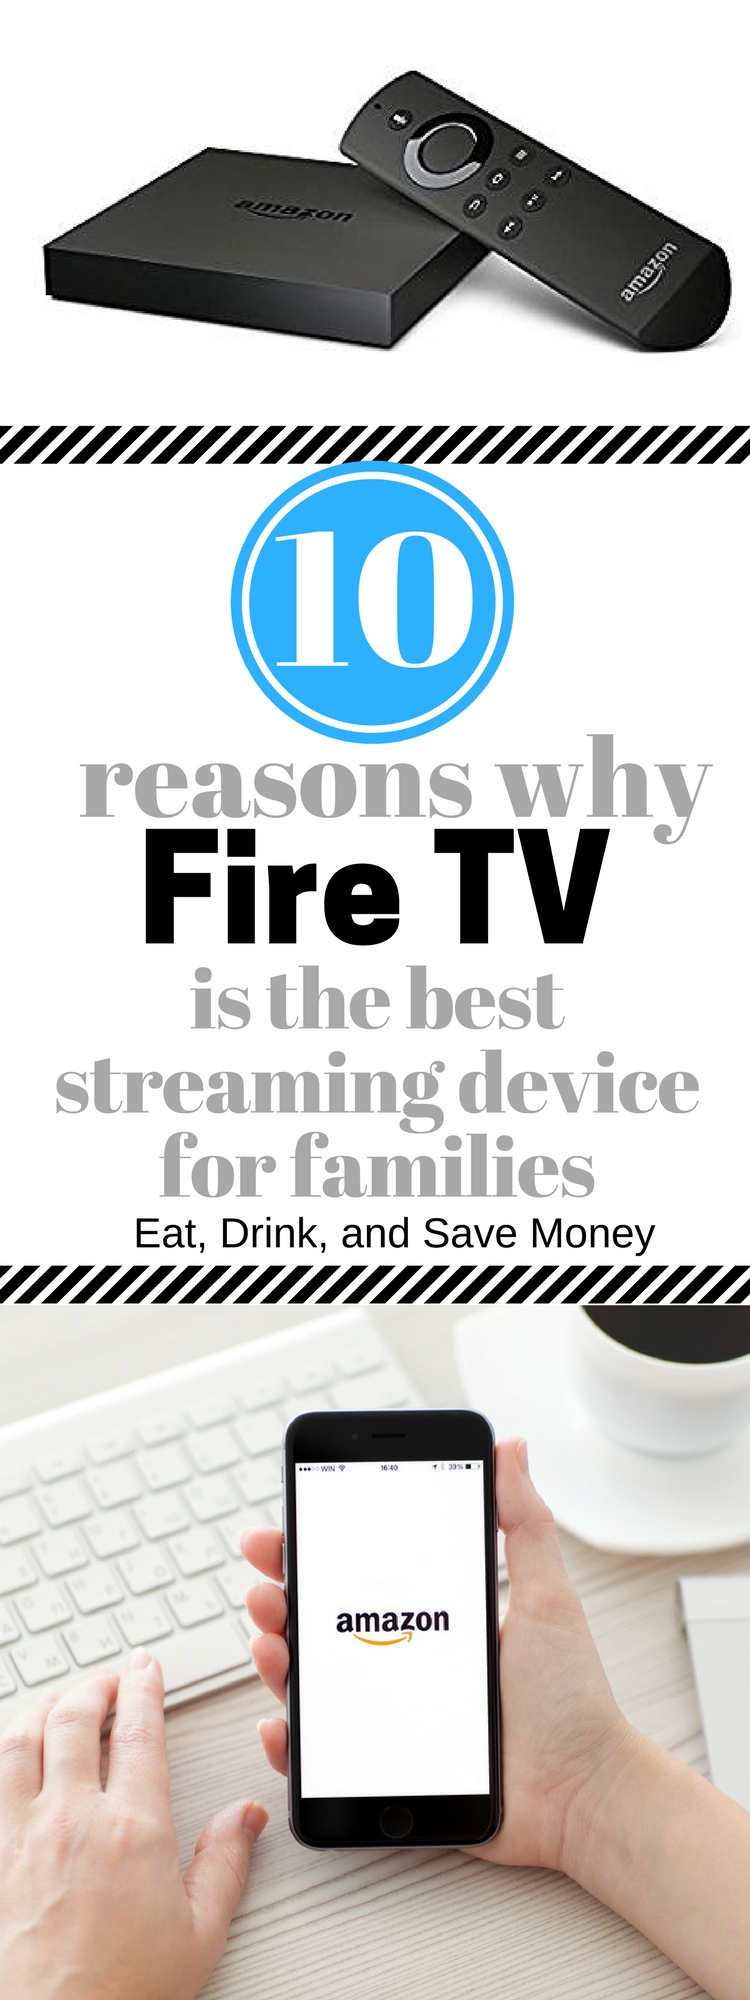 10 Reasons Why Fire TV is the Best Streaming Device for Families.